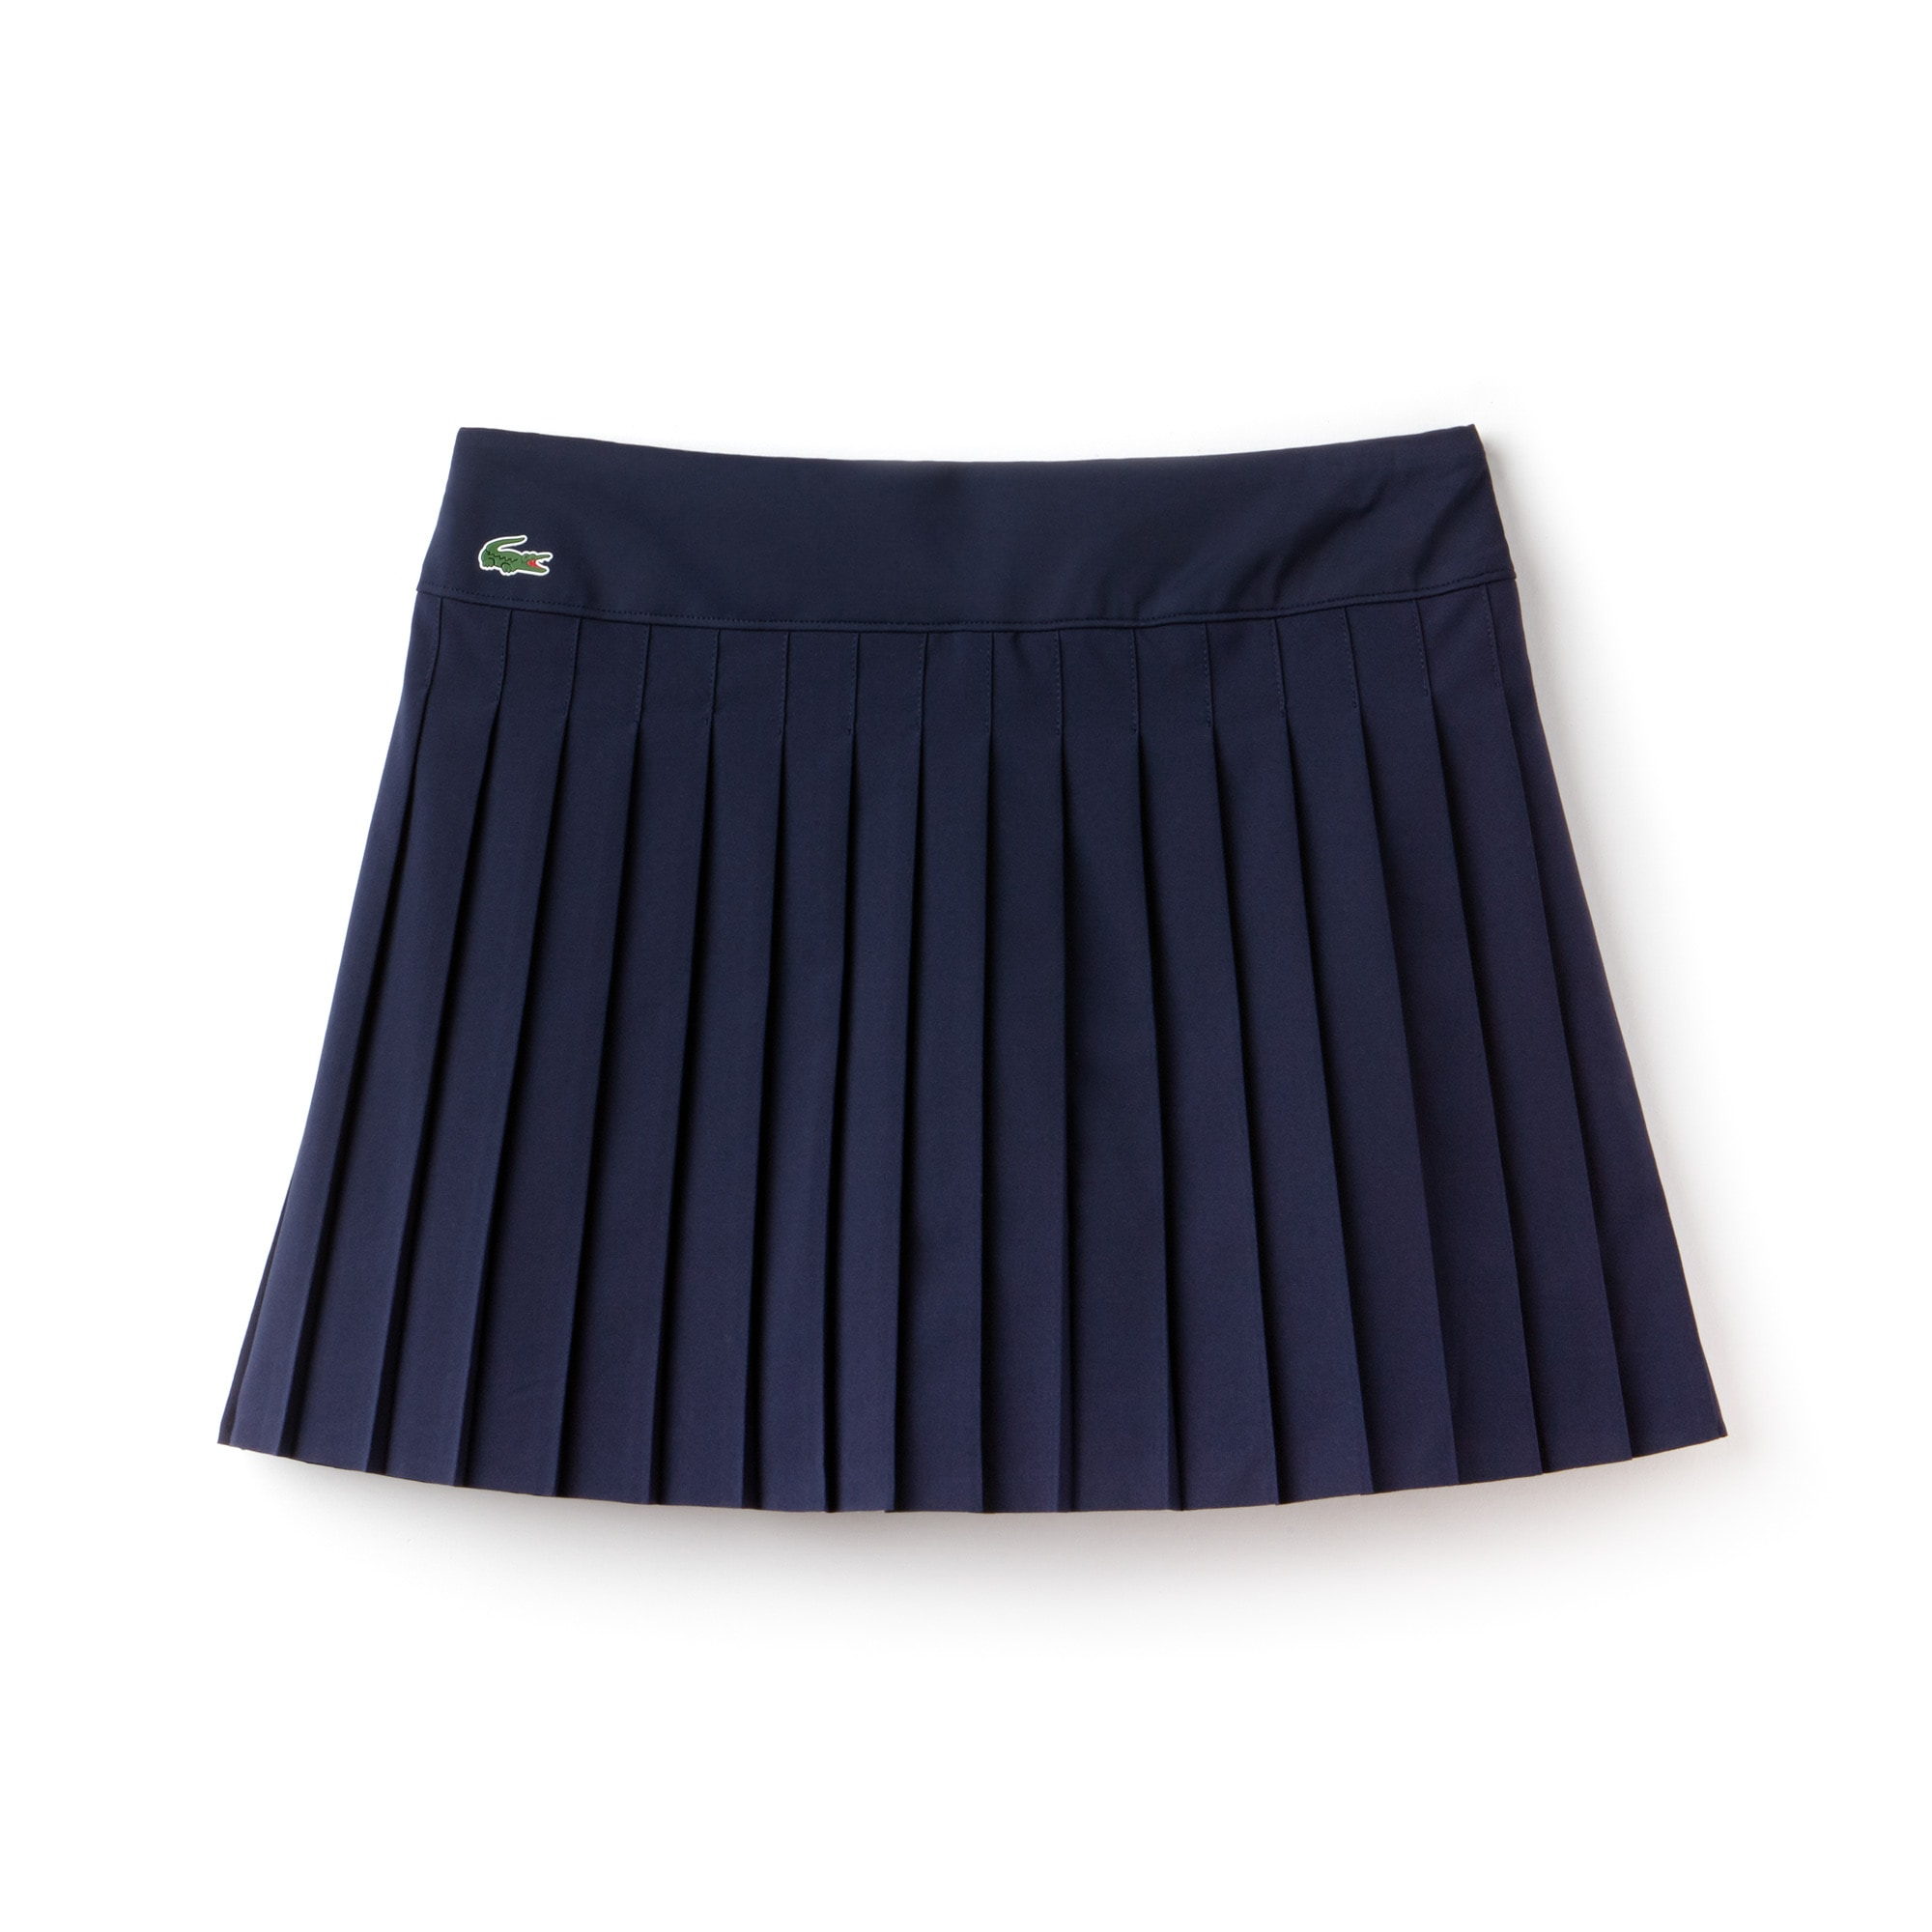 Women's SPORT Tennis Pleated Skirt